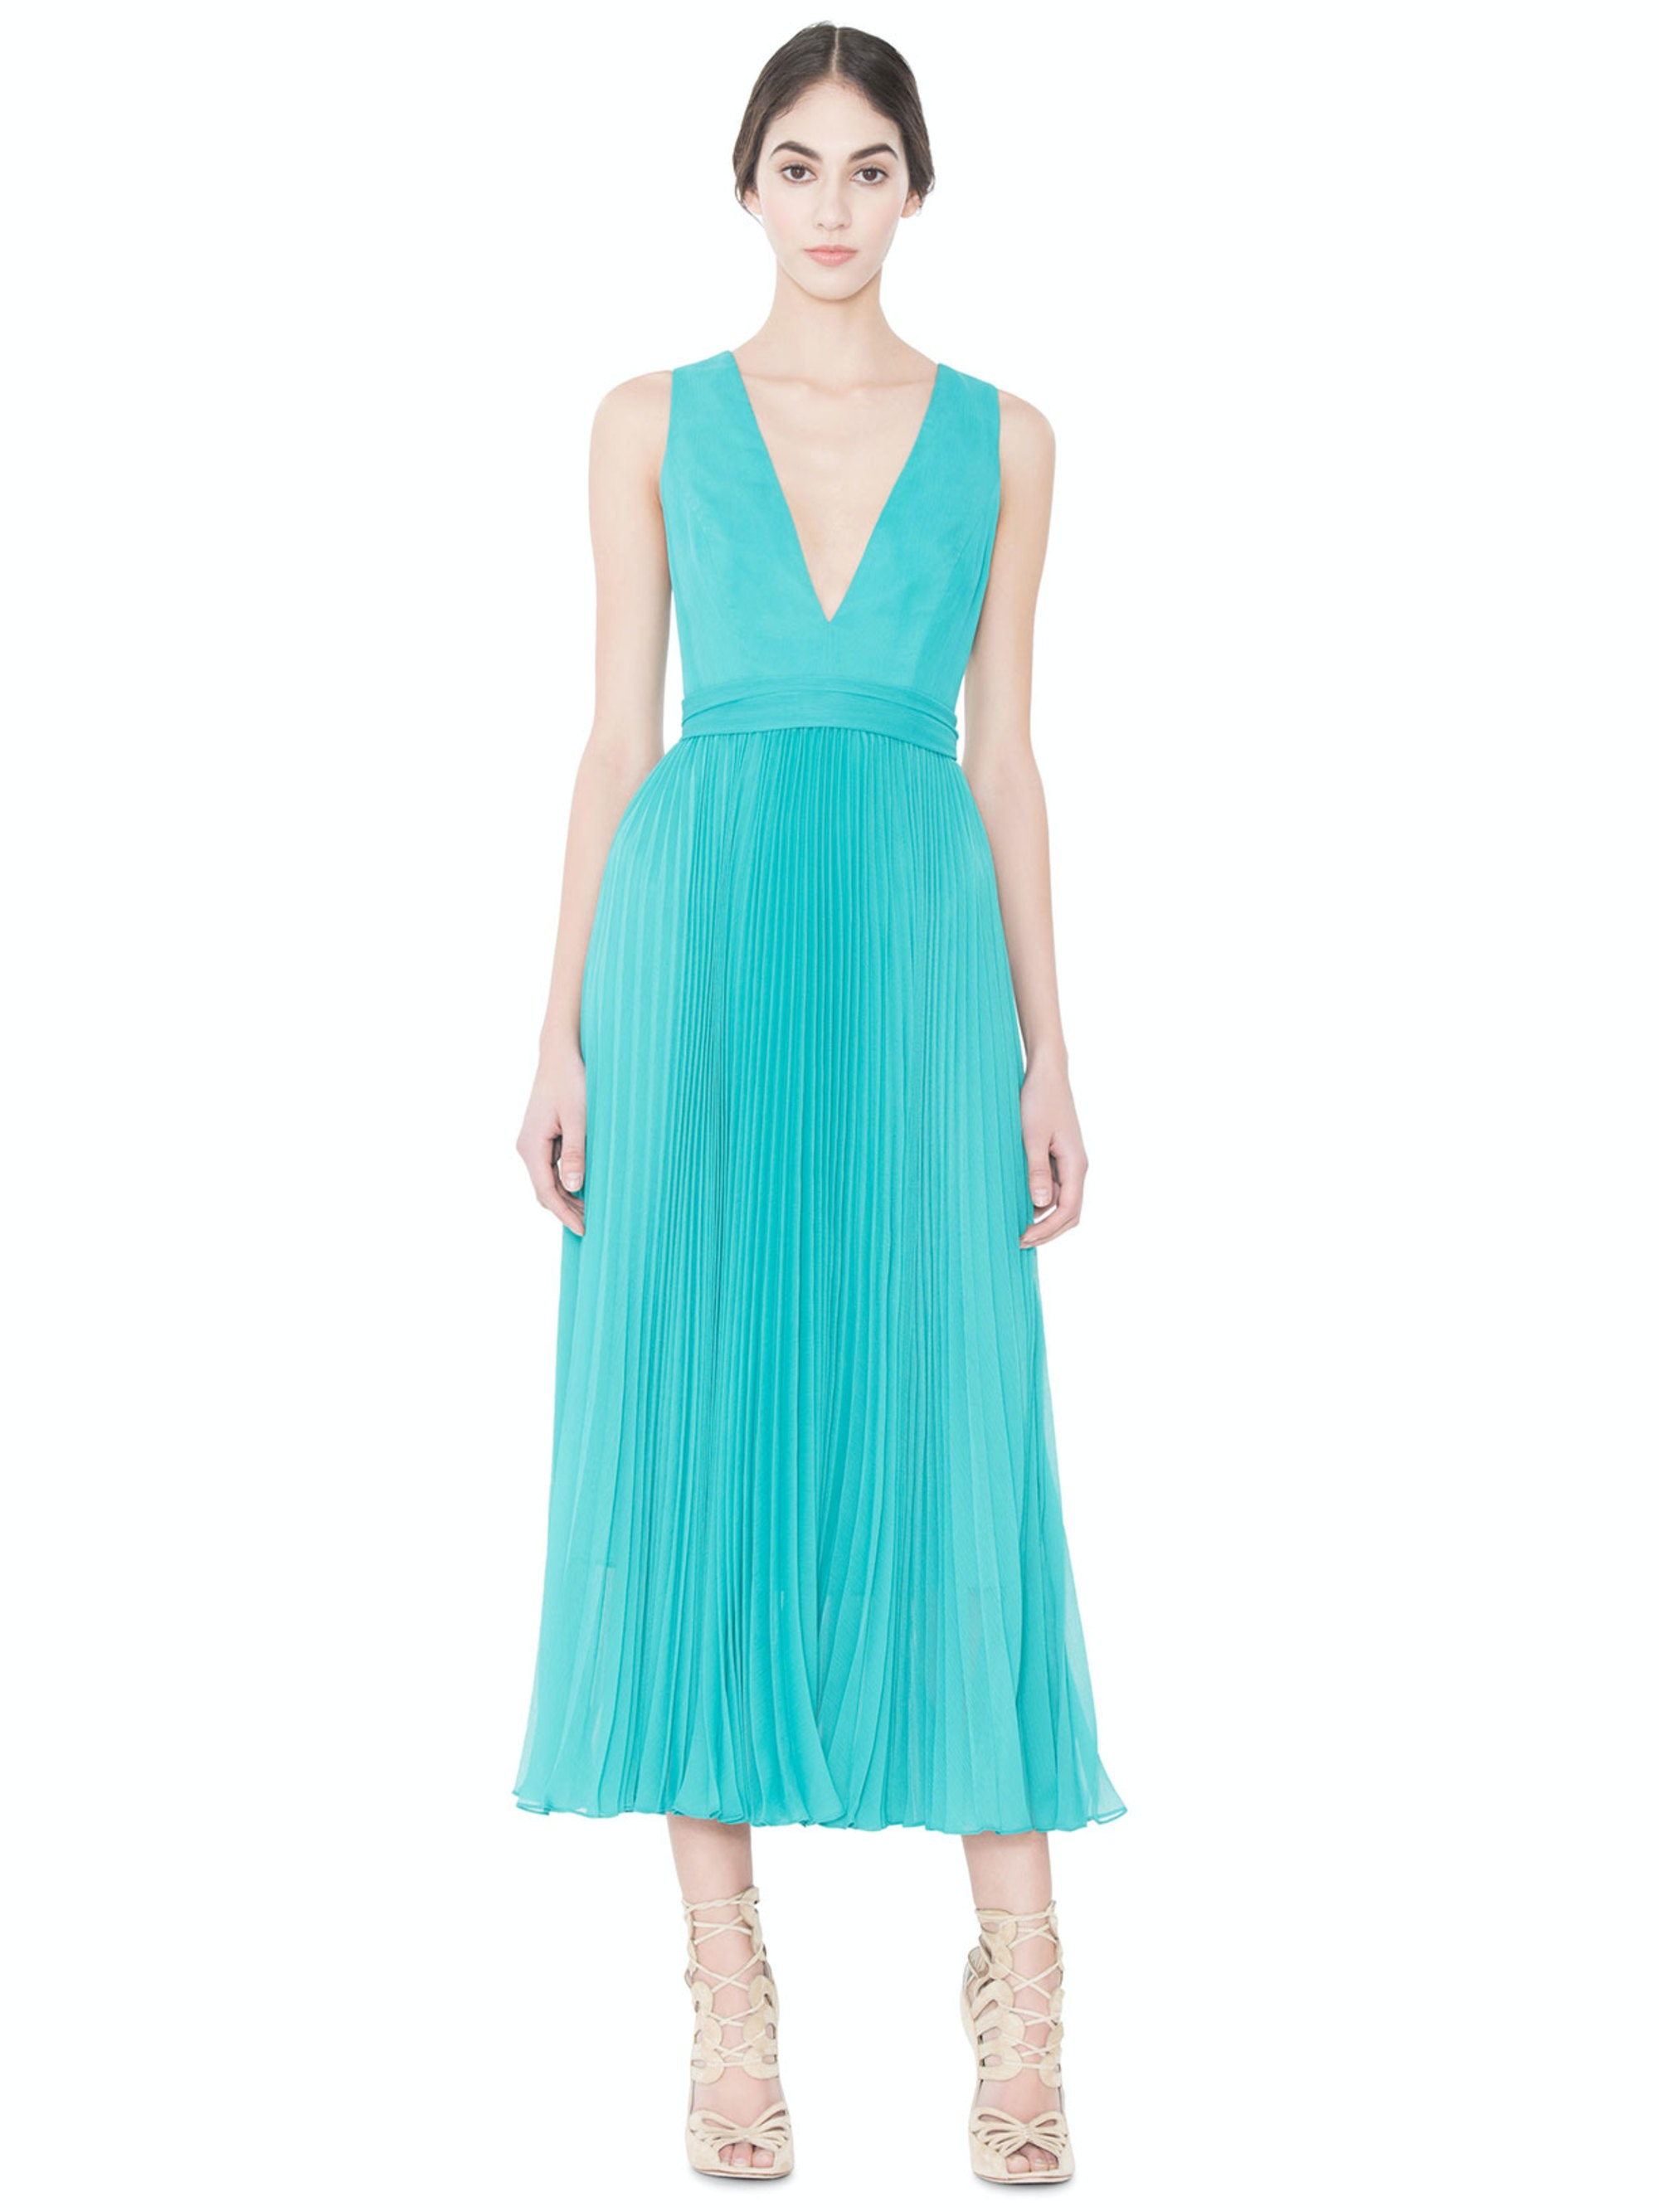 Colorful Alice And Olivia Prom Dresses Collection - All Wedding ...